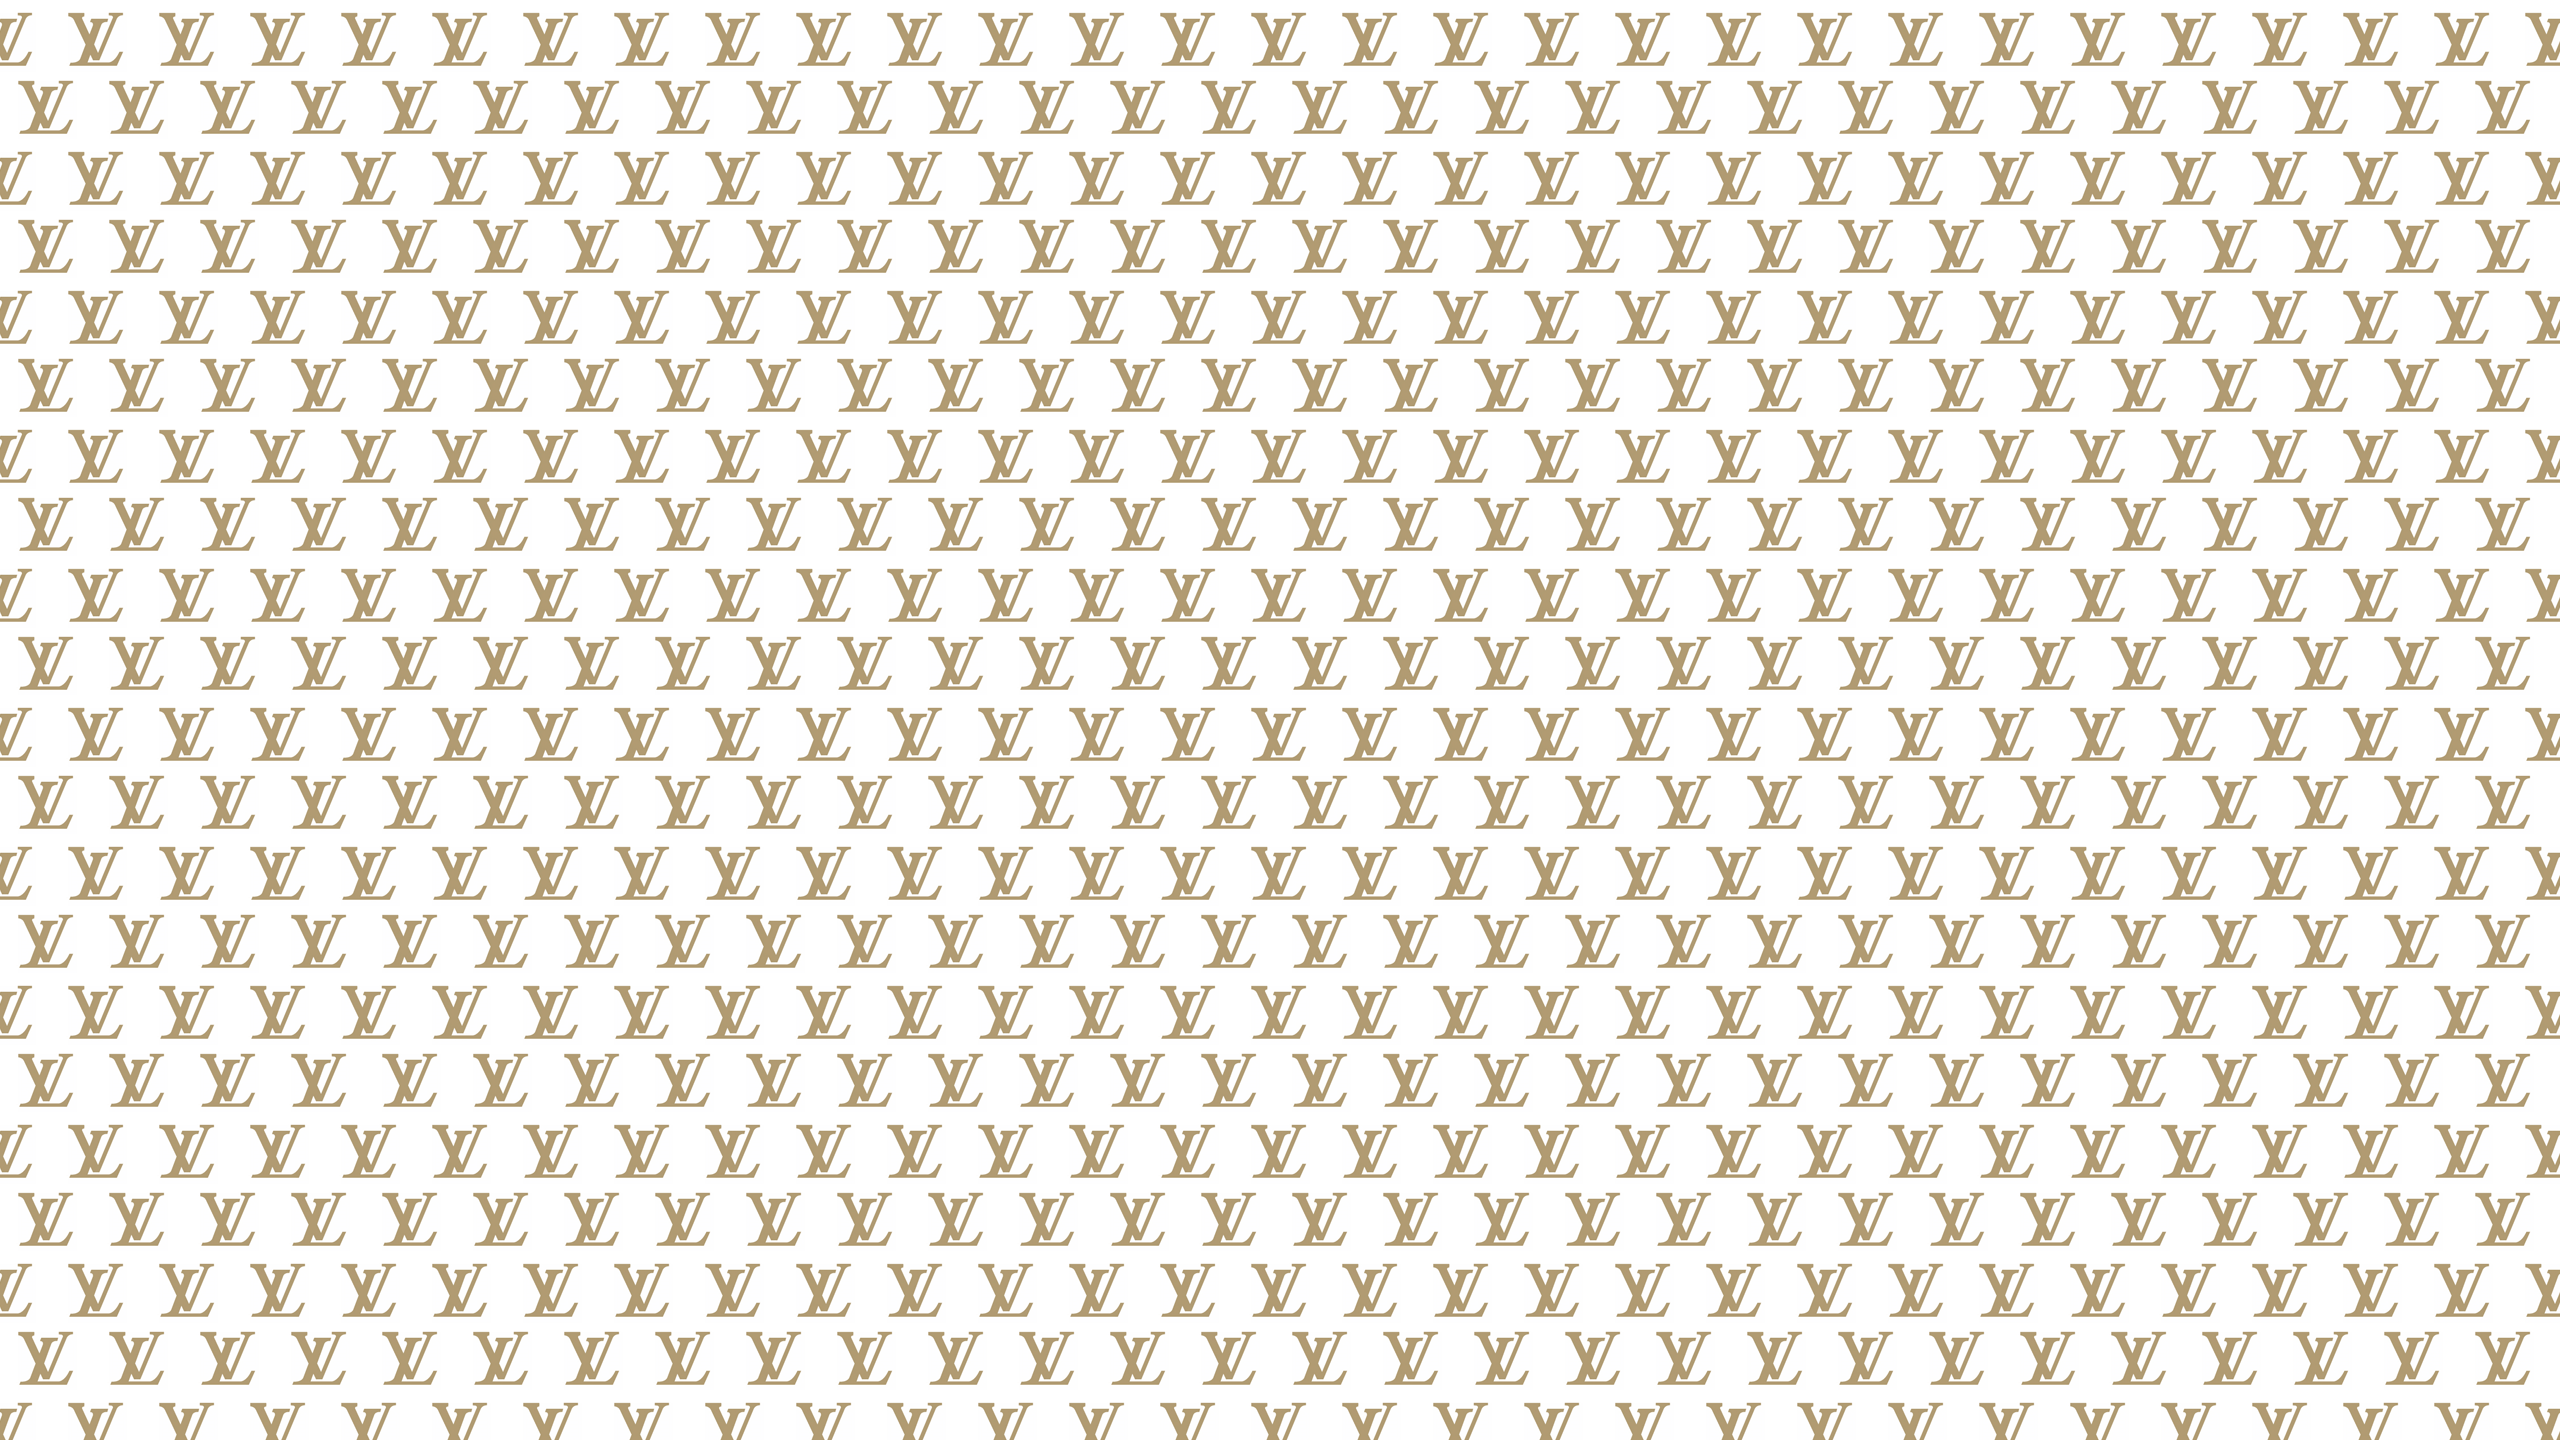 Gold Louis Vuitton Desktop Wallpaper is easy Just save the wallpaper 2560x1440